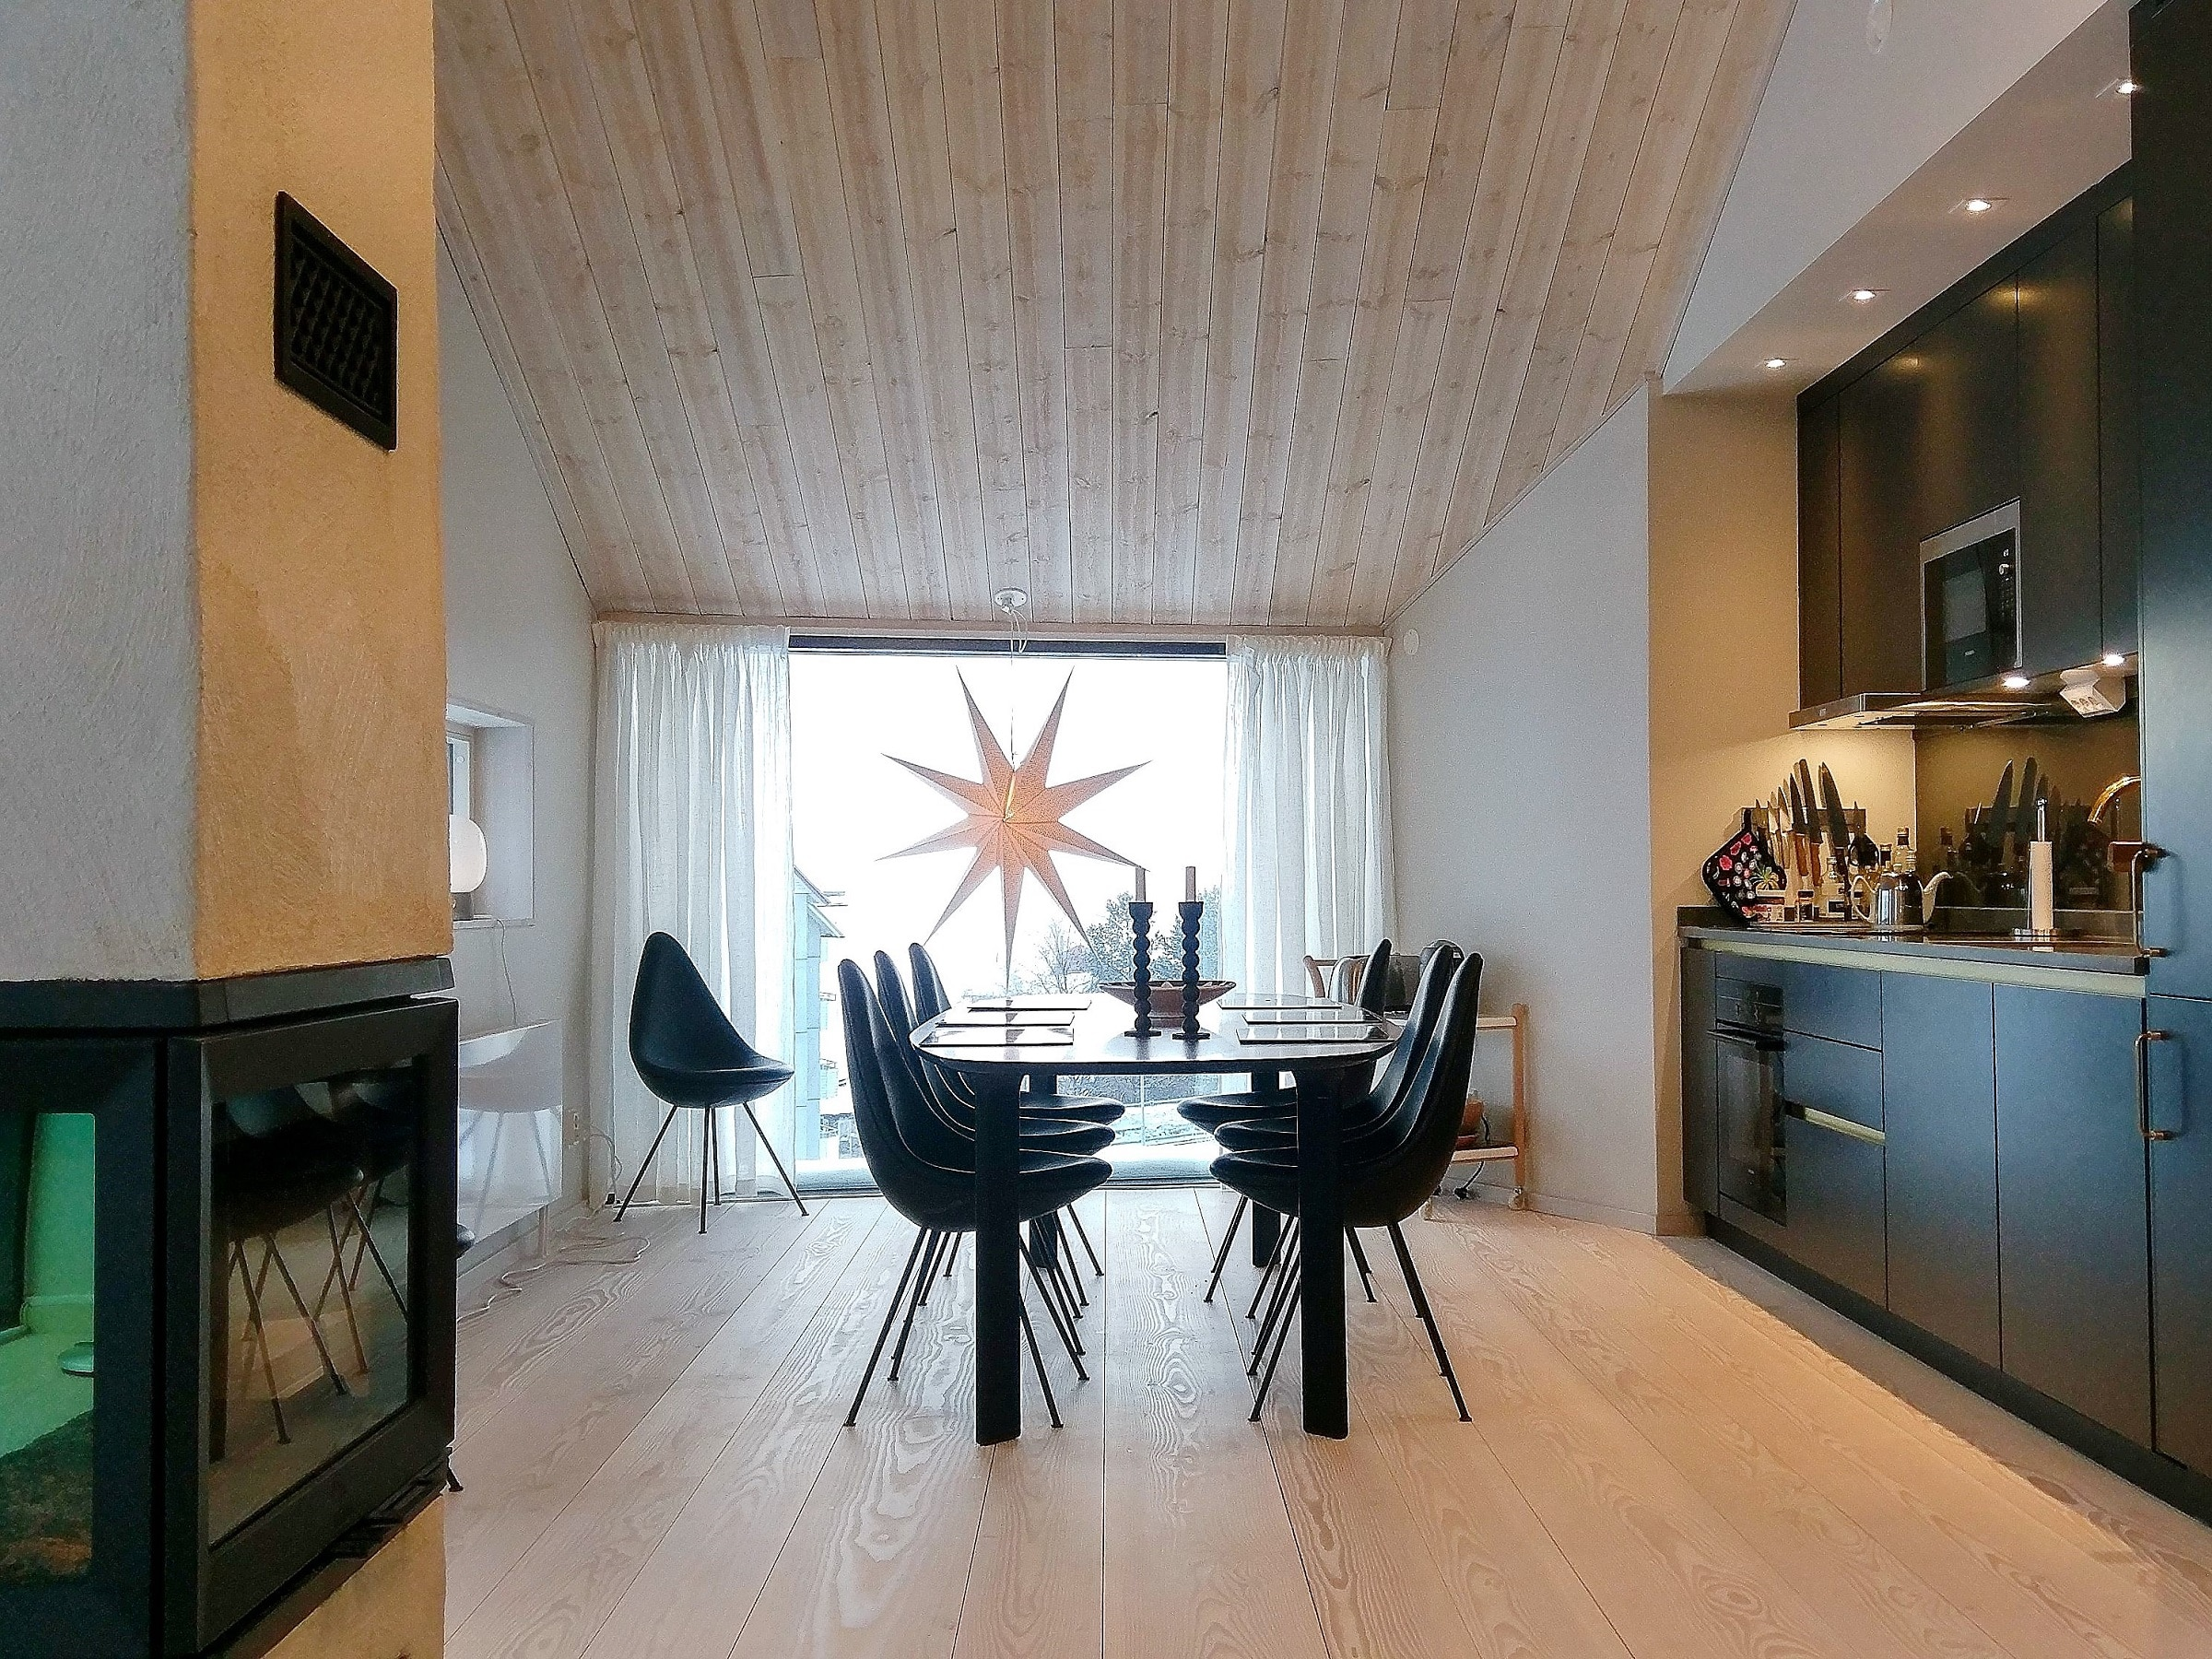 Kitchen with fireplace and large dining table in Skiers Lodge in Åre